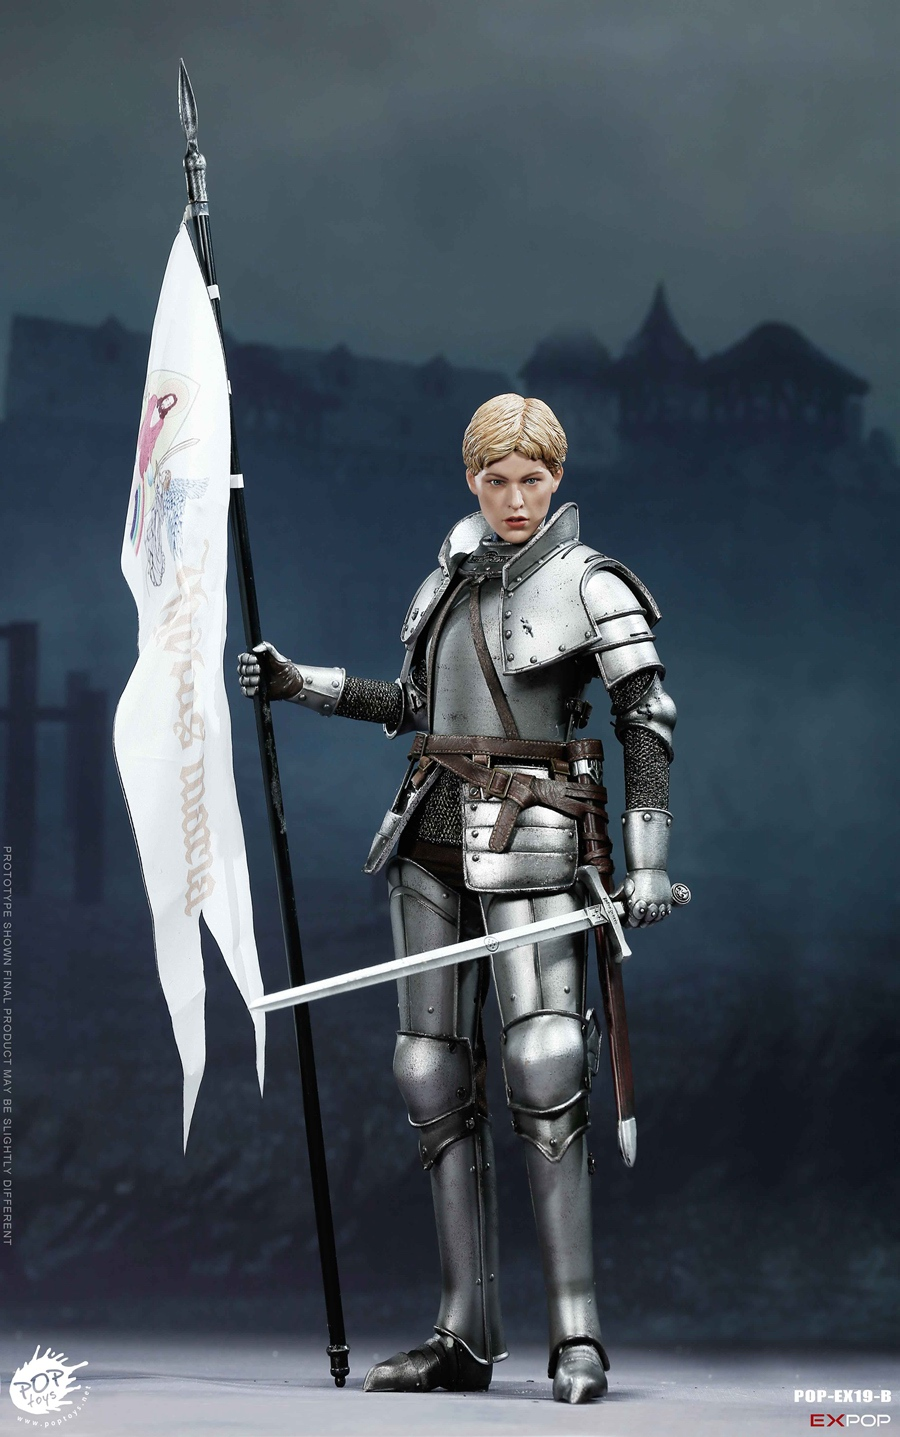 NEW PRODUCT: POPTOYS New Products: 1/6 St. Knights - Assault Edition & Triumph Edition & Iron Armor (POP-EX19 ABC) 151